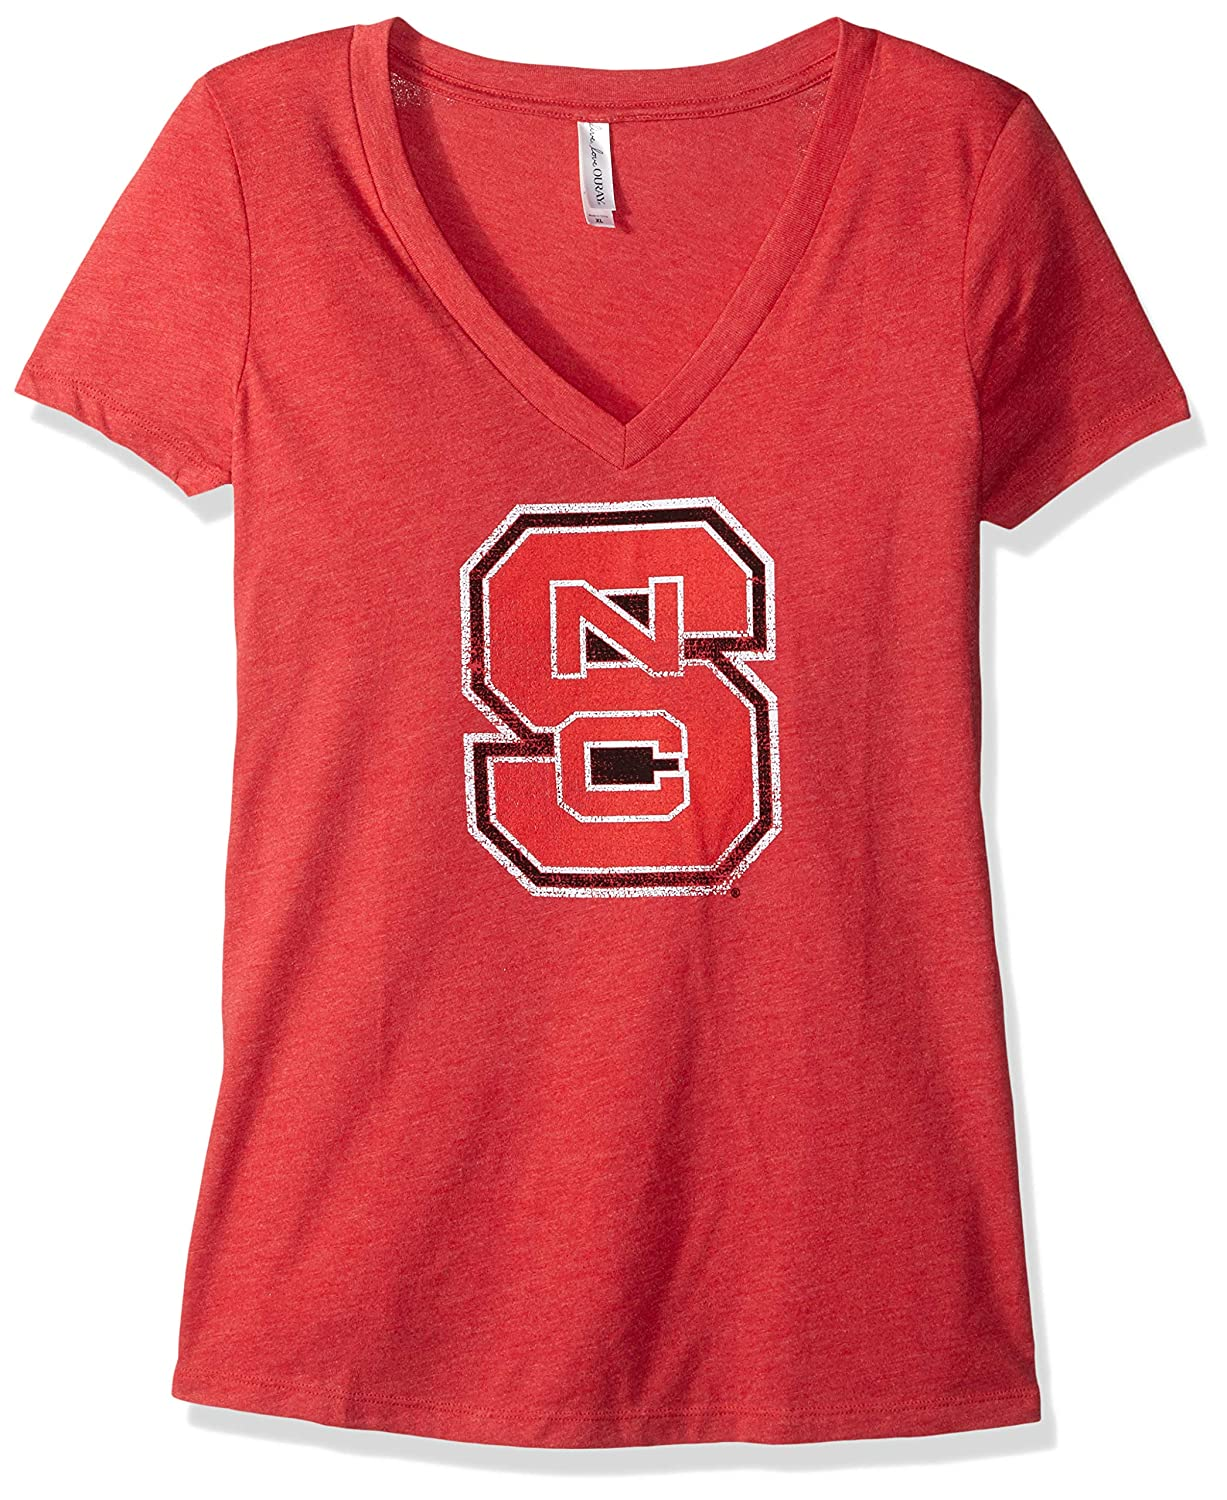 Vintage Red 2X NCAA North Carolina State Wolfpack Womens Tri Blend Deep V Short Sleeve Tee